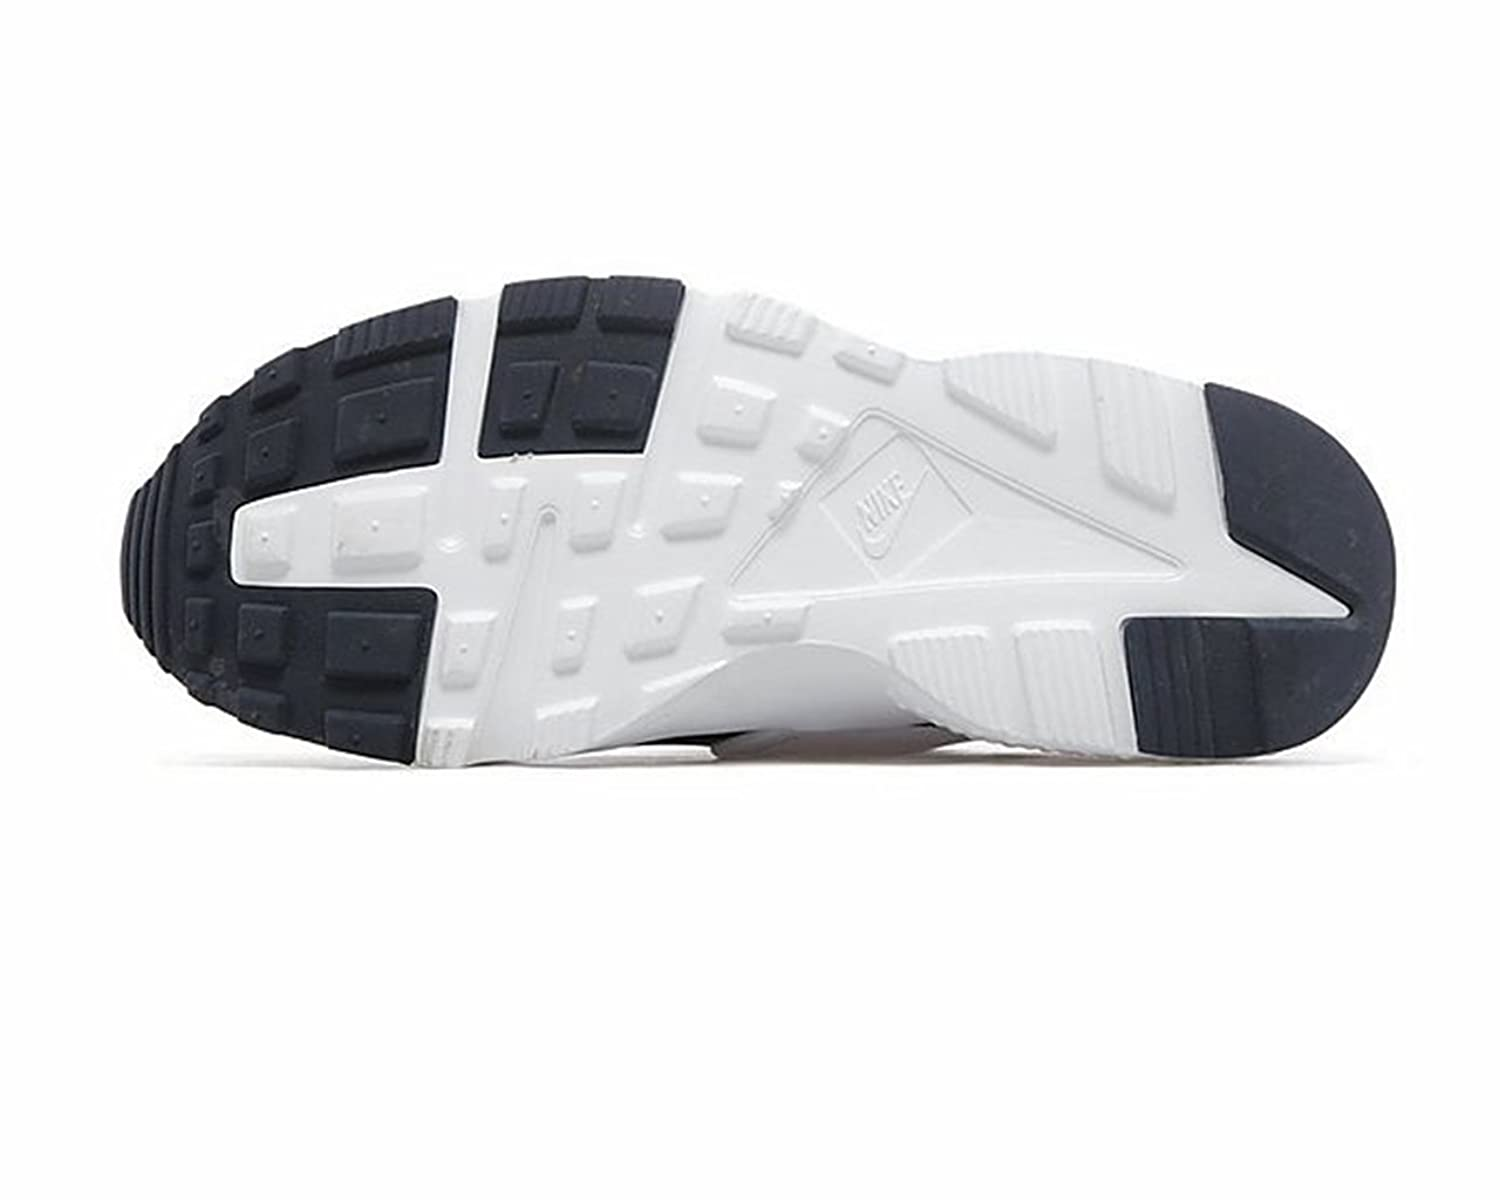 Nike Air Huarache Kids Children Boys Girls Trainers Shoes Navy/White  (UK-12): Amazon.co.uk: Shoes & Bags